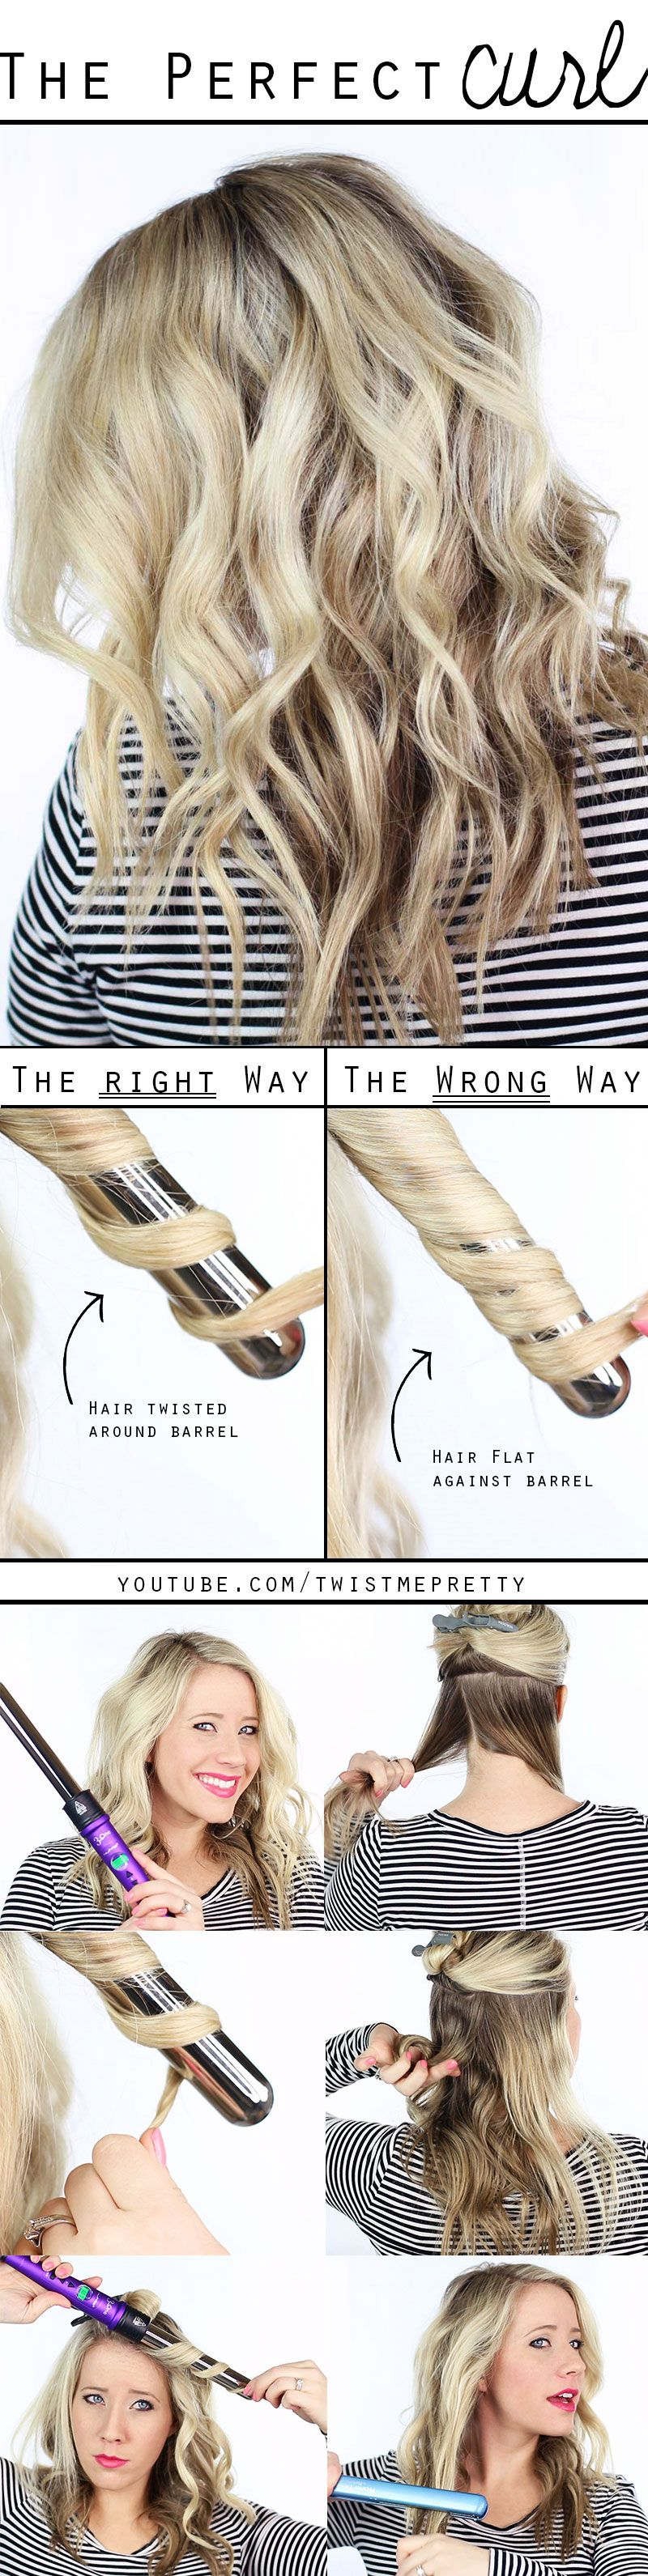 5 Hair Curling Wand Tutorials To Prevent You From Burning Your